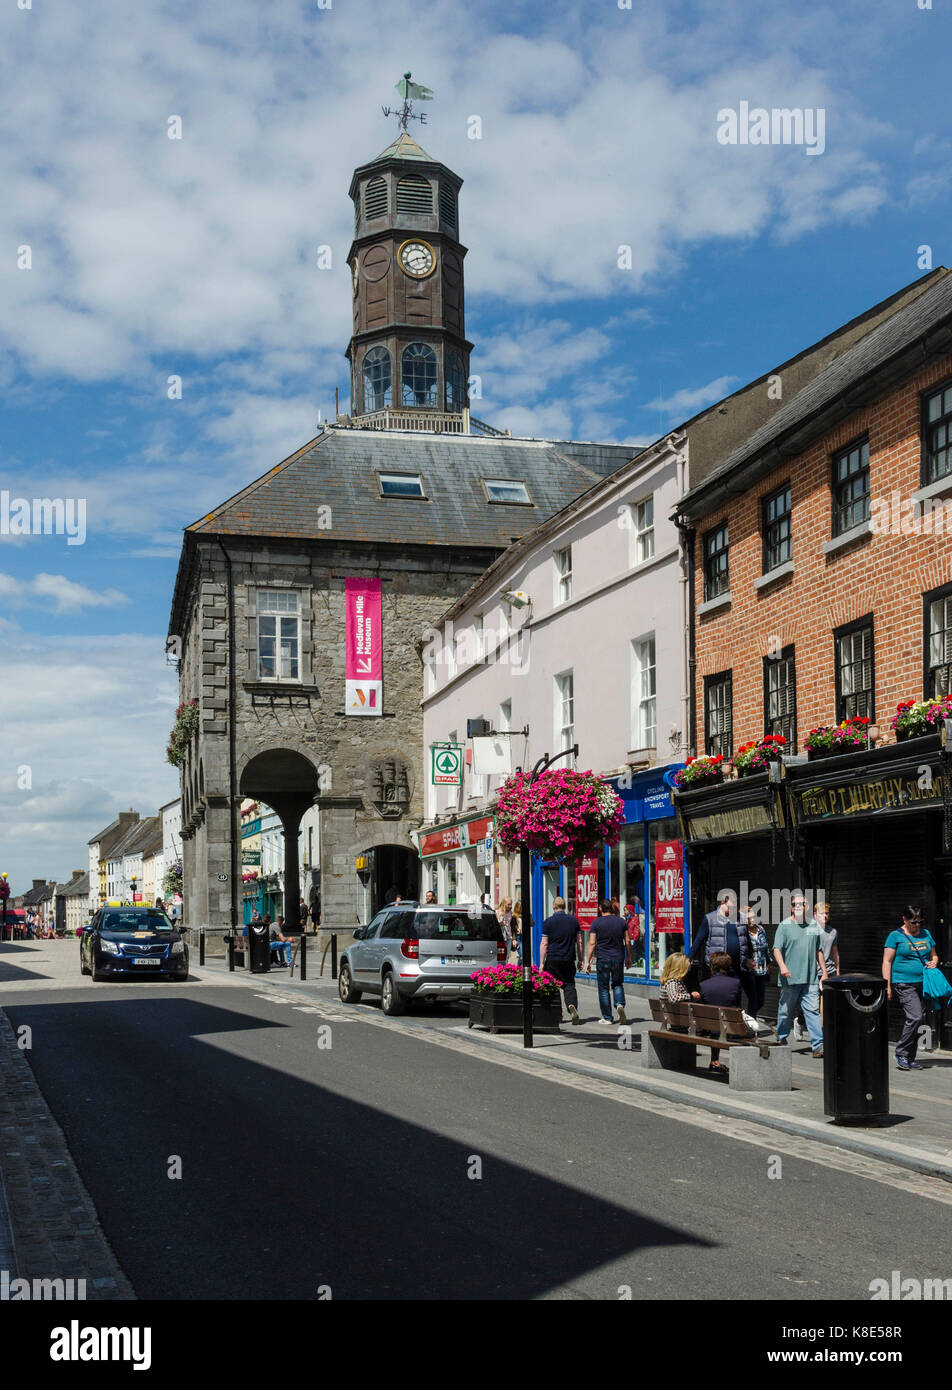 Ireland, Kilkenny, High Street with city hall The Tholsel, Irland, High Street mit Rathaus The Tholsel Stock Photo